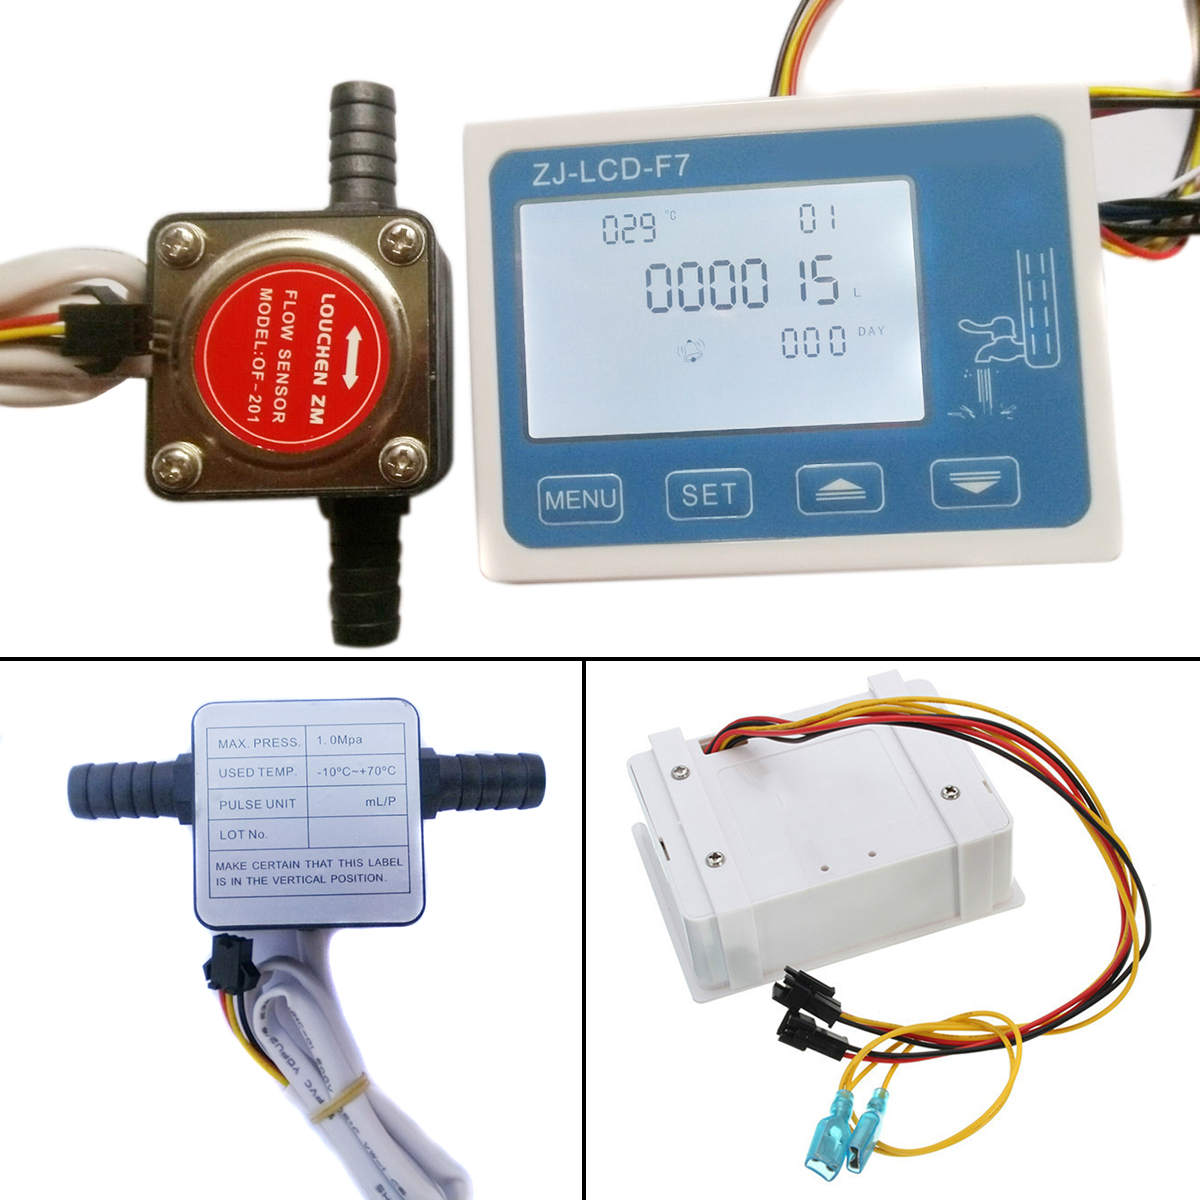 DC 12-24V Flowmeter 0-10LPM LCD Digital Fuel Oil Flow Meter With 13mm Gasoline Gear Flow Sensor Mayitr lcd digital fuel oil flow meter flowmeter with 13mm gasoline gear flow sensor 0 10lpm